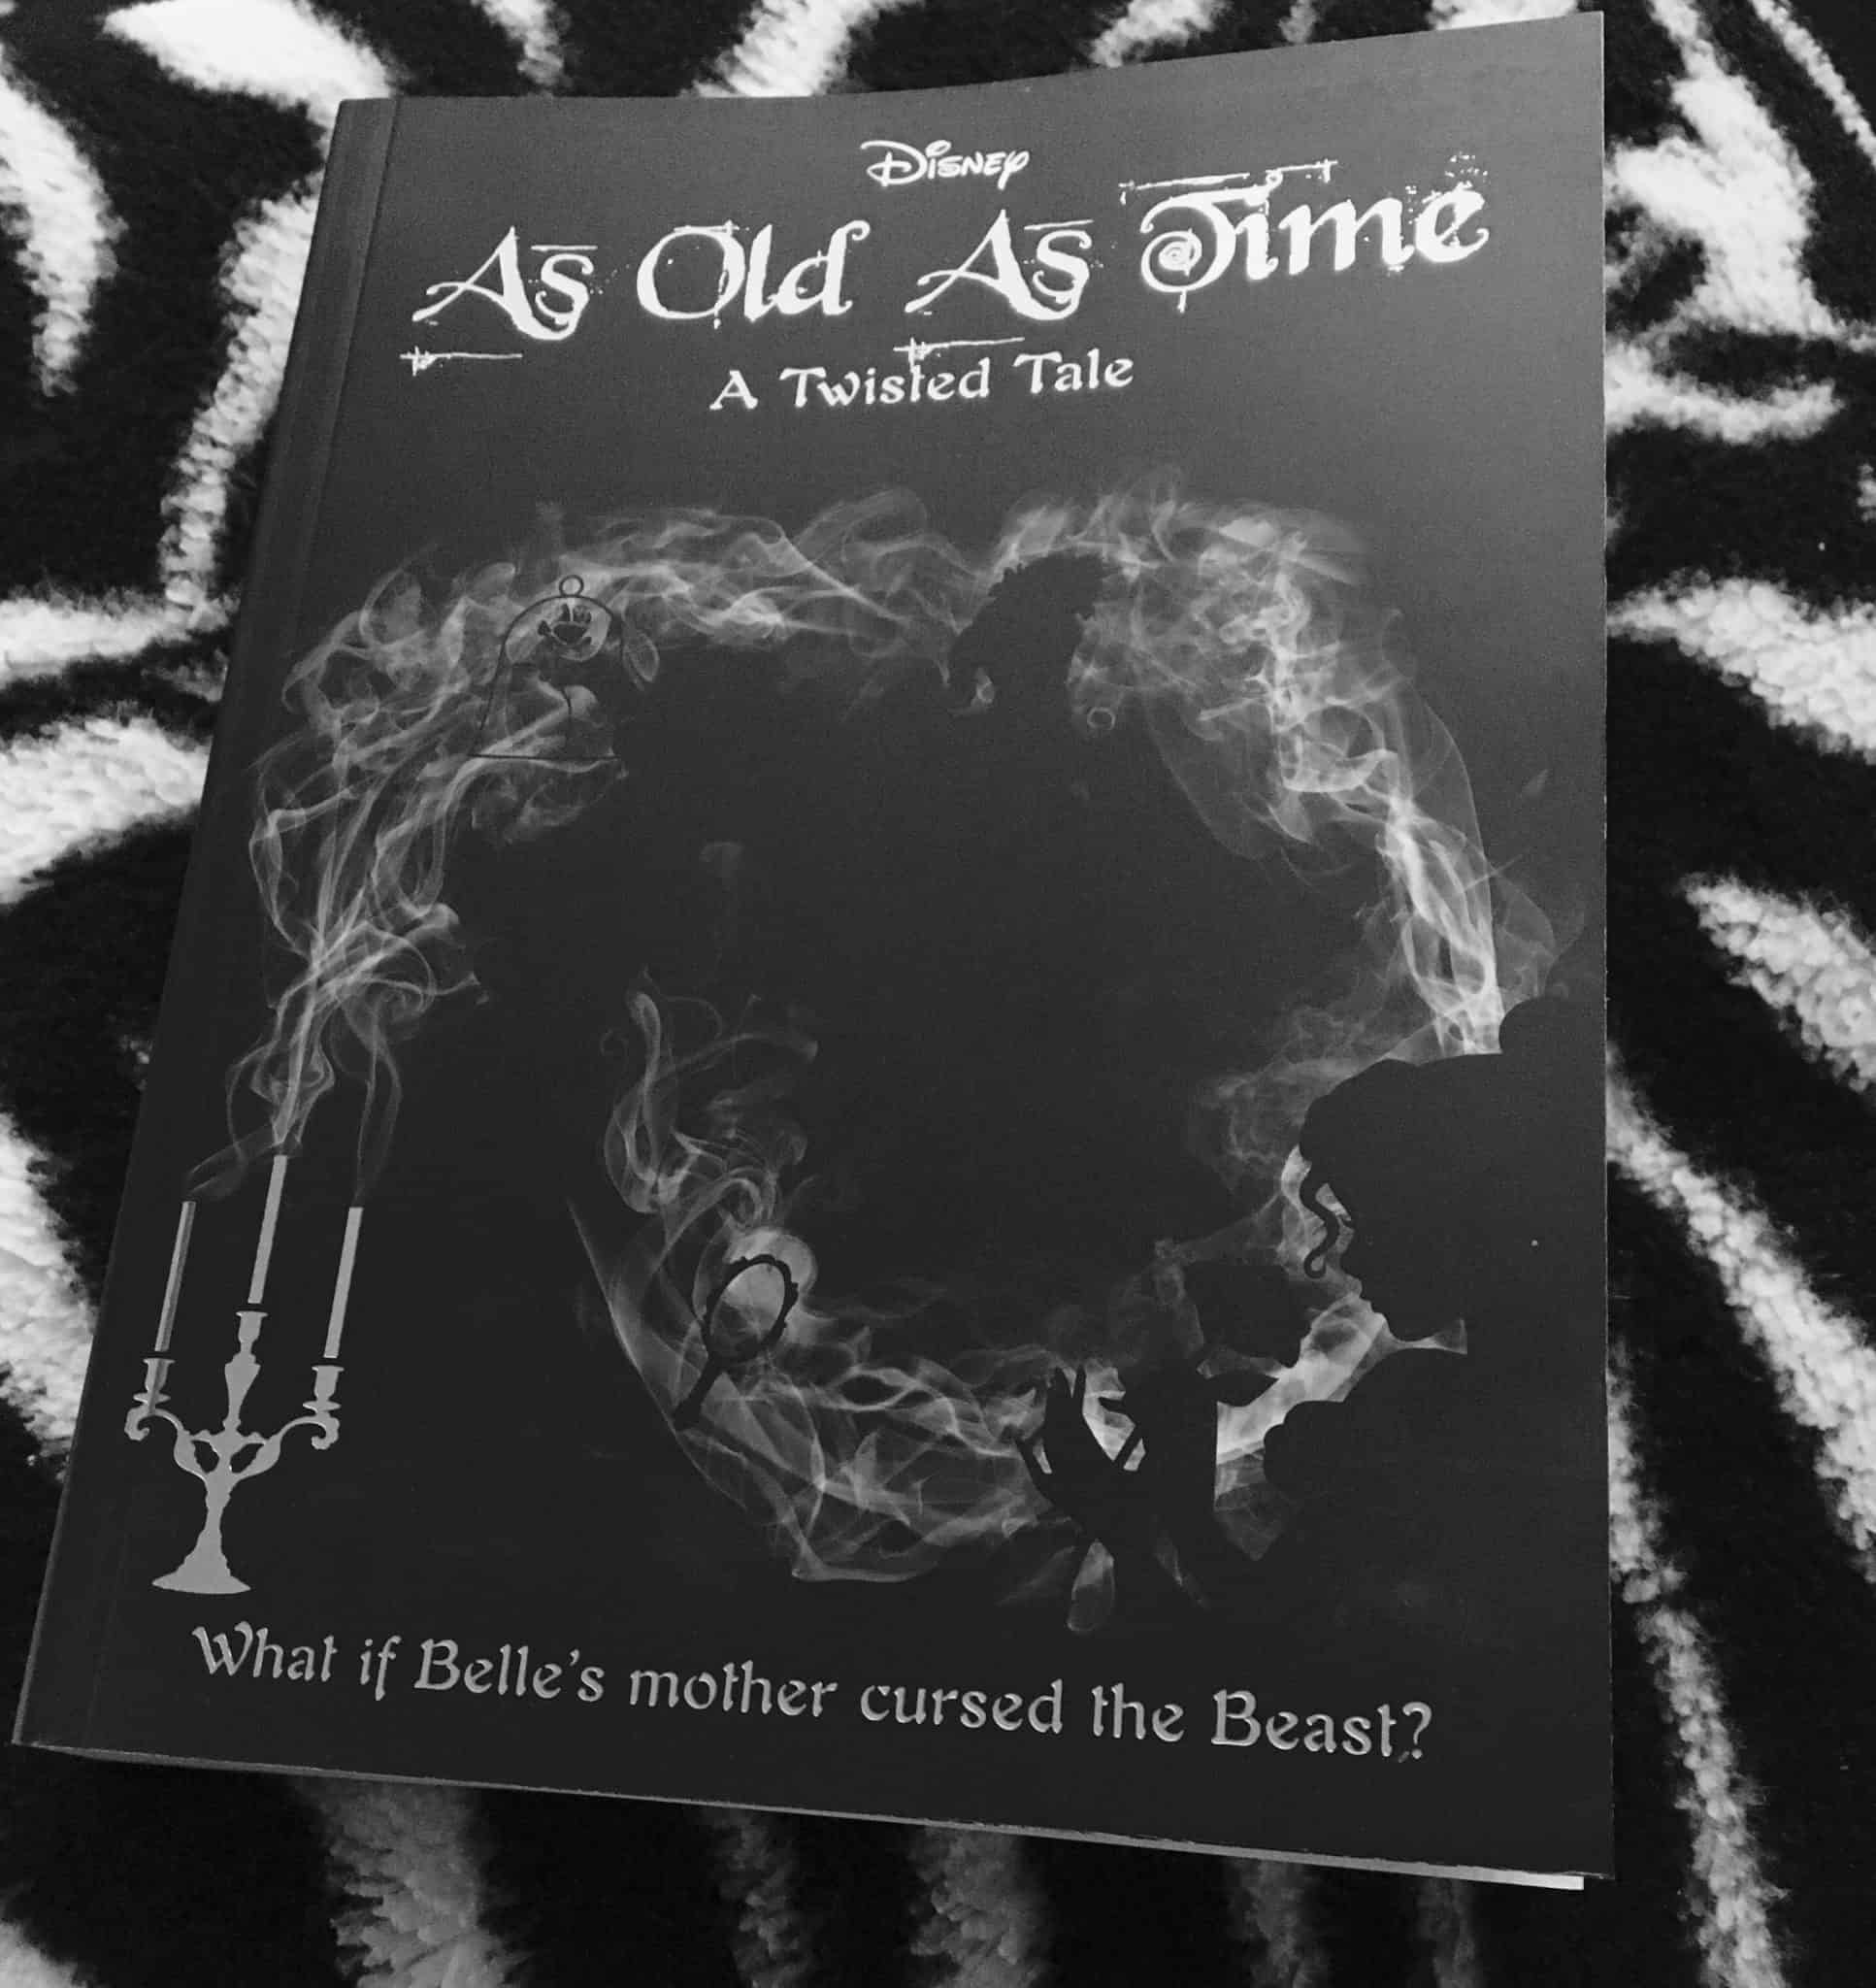 As Old As Time - A Twisted Tale